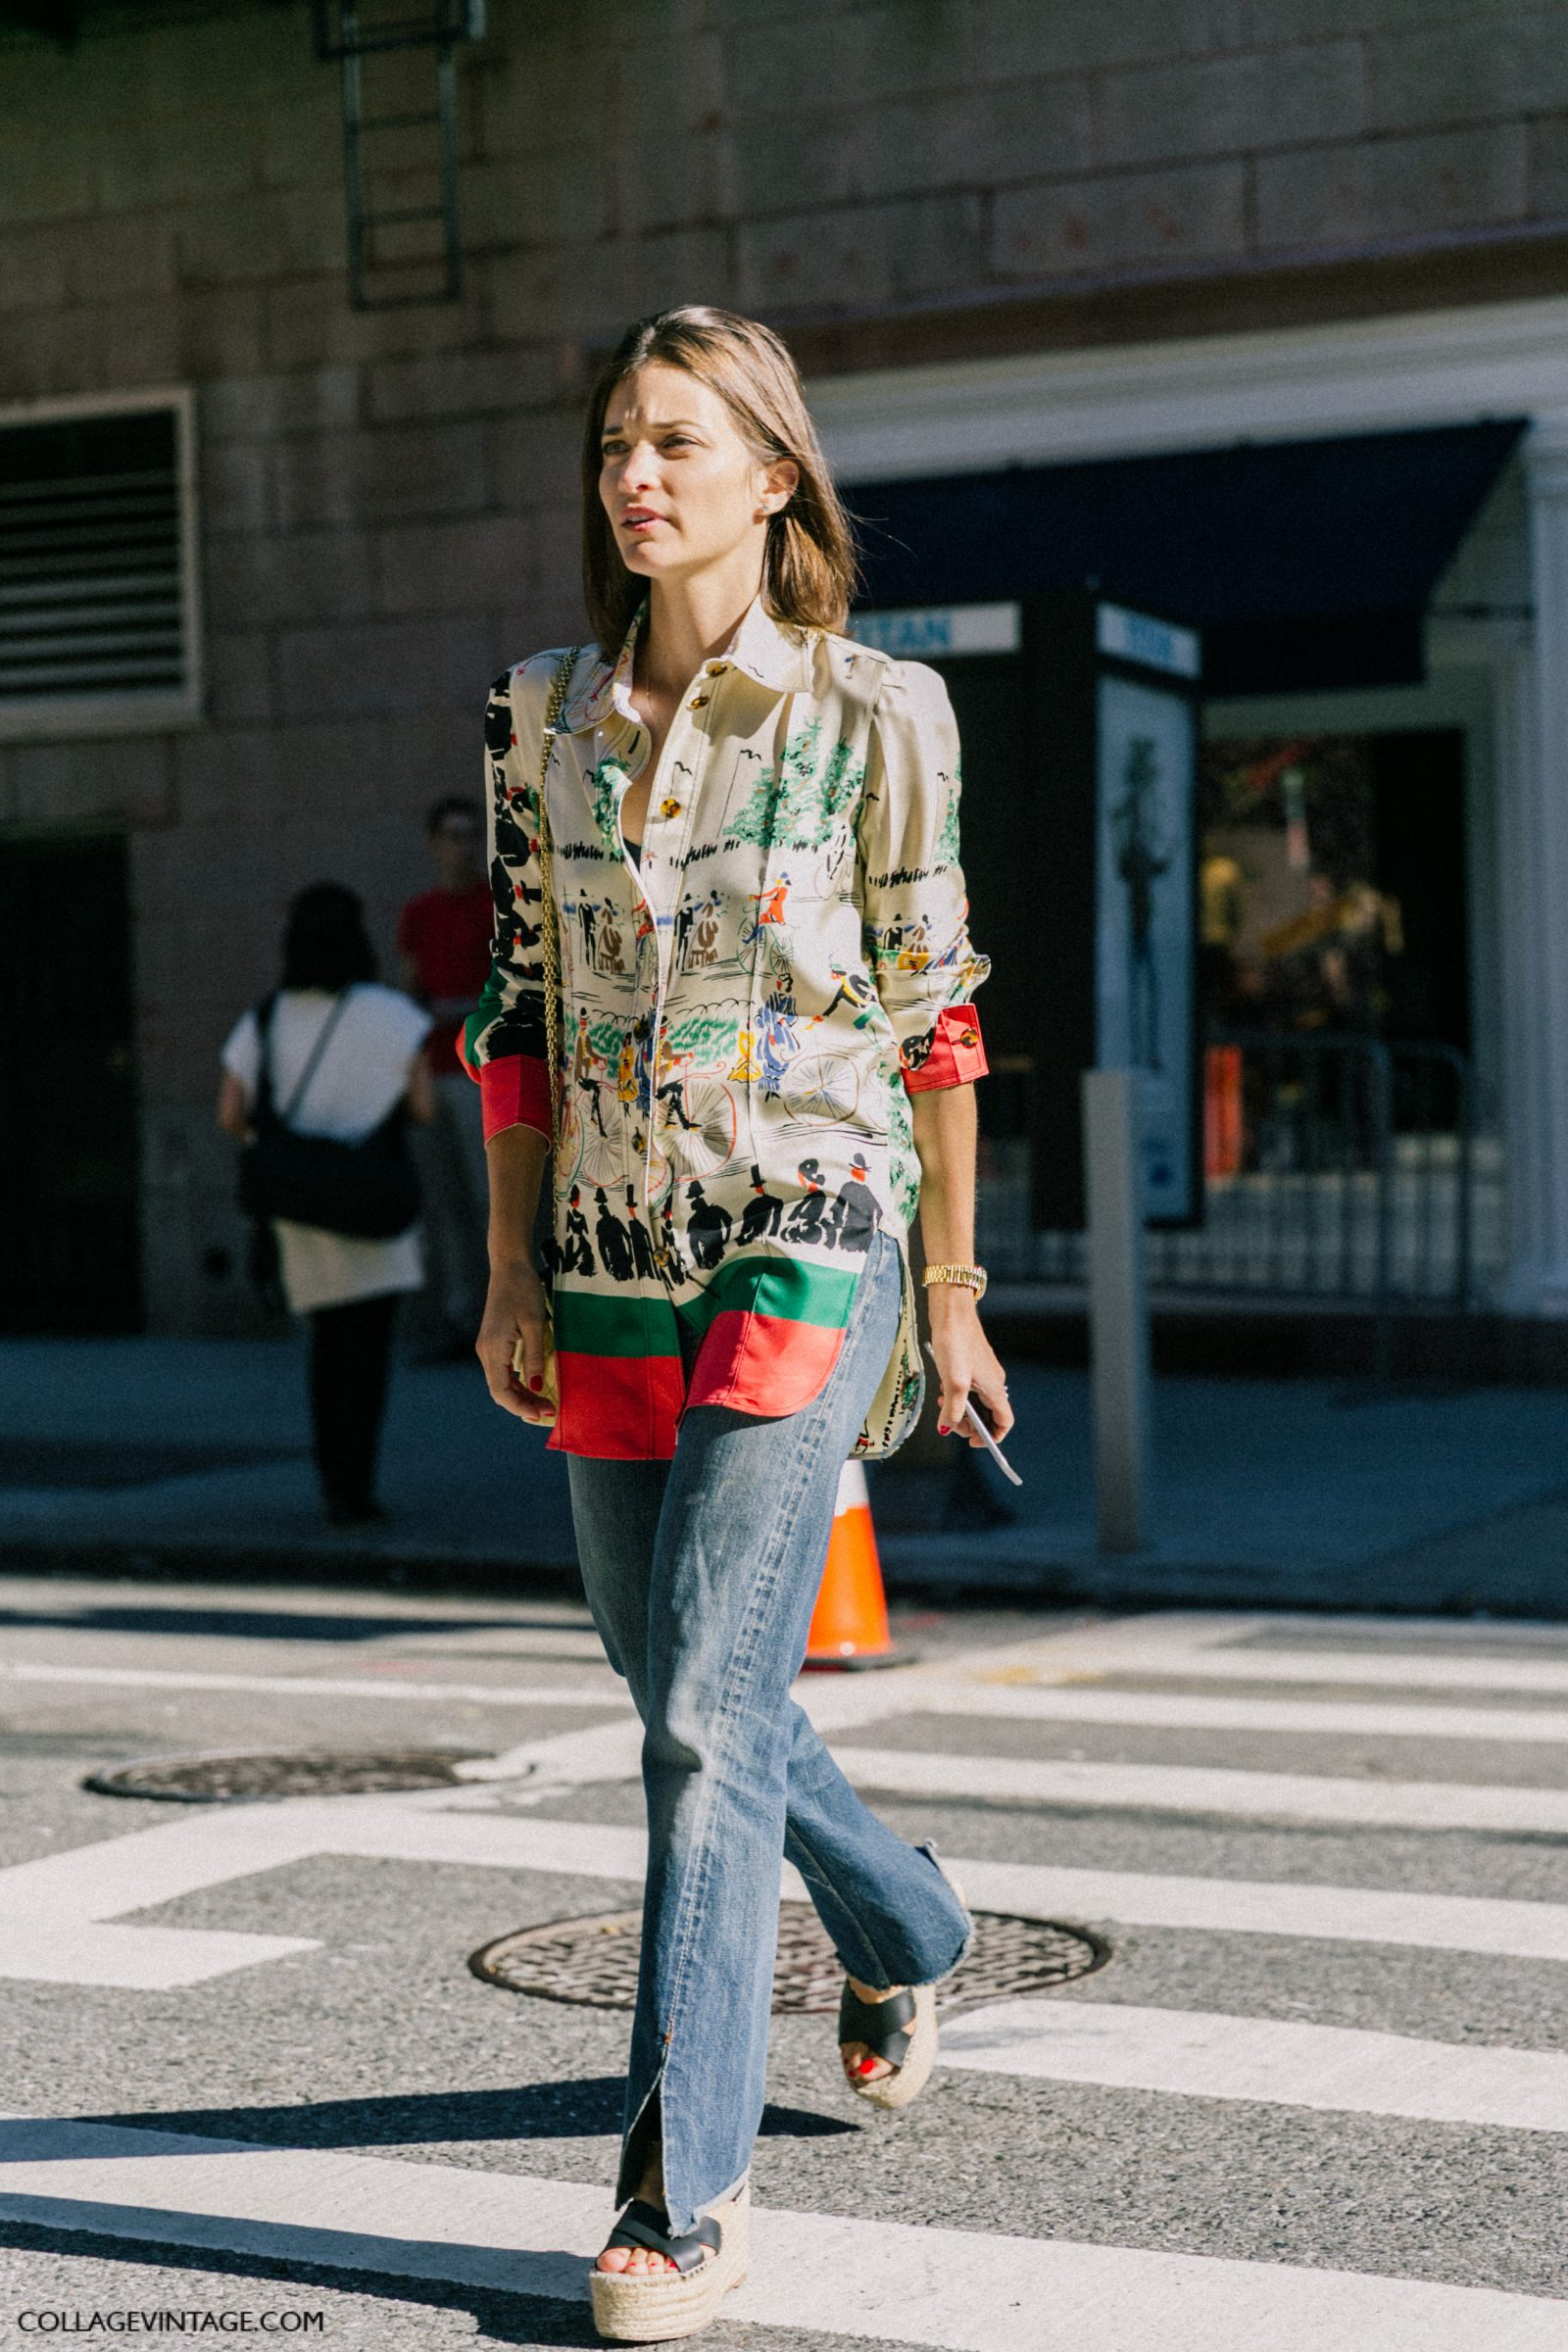 nyfw-new_york_fashion_week_ss17-street_style-outfits-collage_vintage-vintage-phillip_lim-the-row-proenza_schouler-rossie_aussolin-9